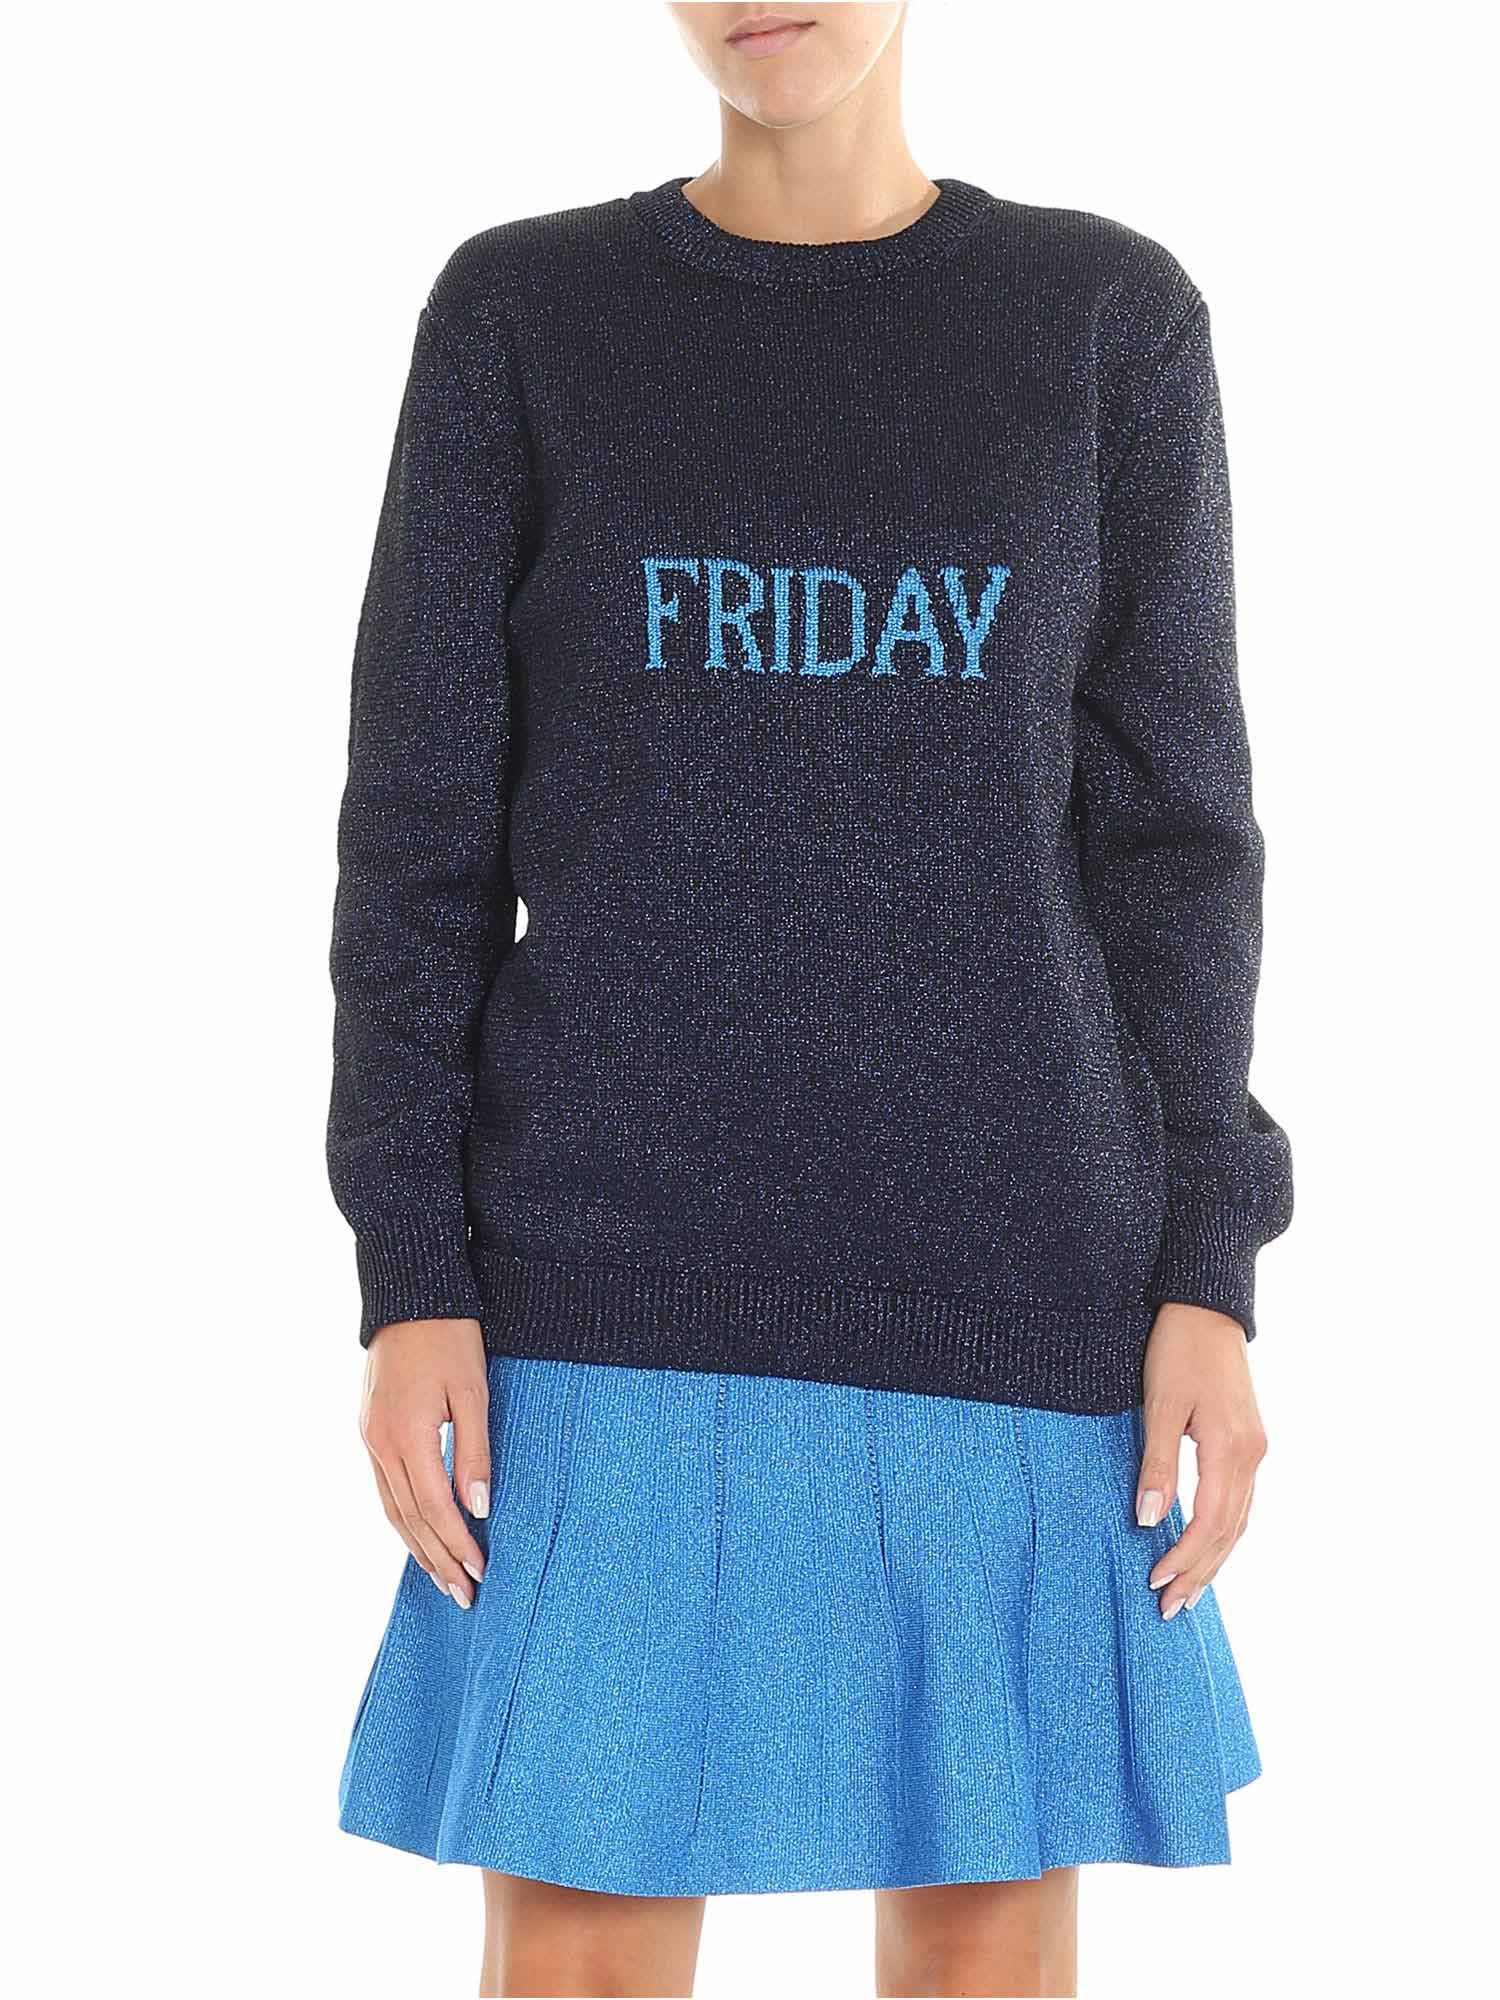 Alberta Ferretti - Friday Sweater